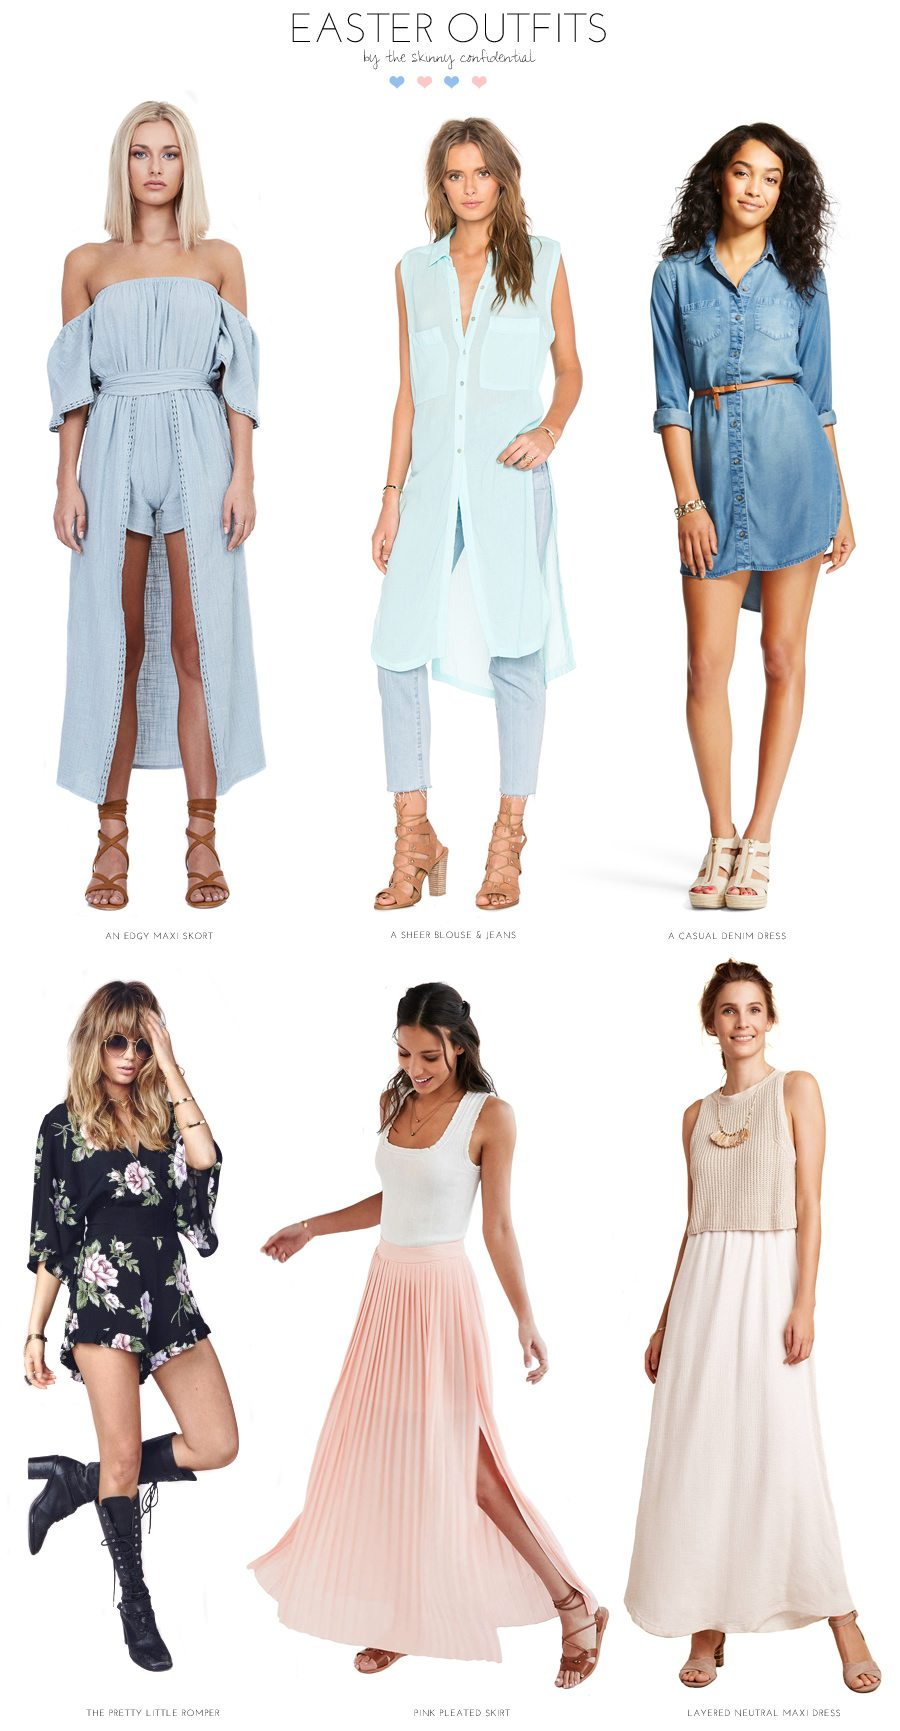 easter outfit ideas   by the skinny confidential